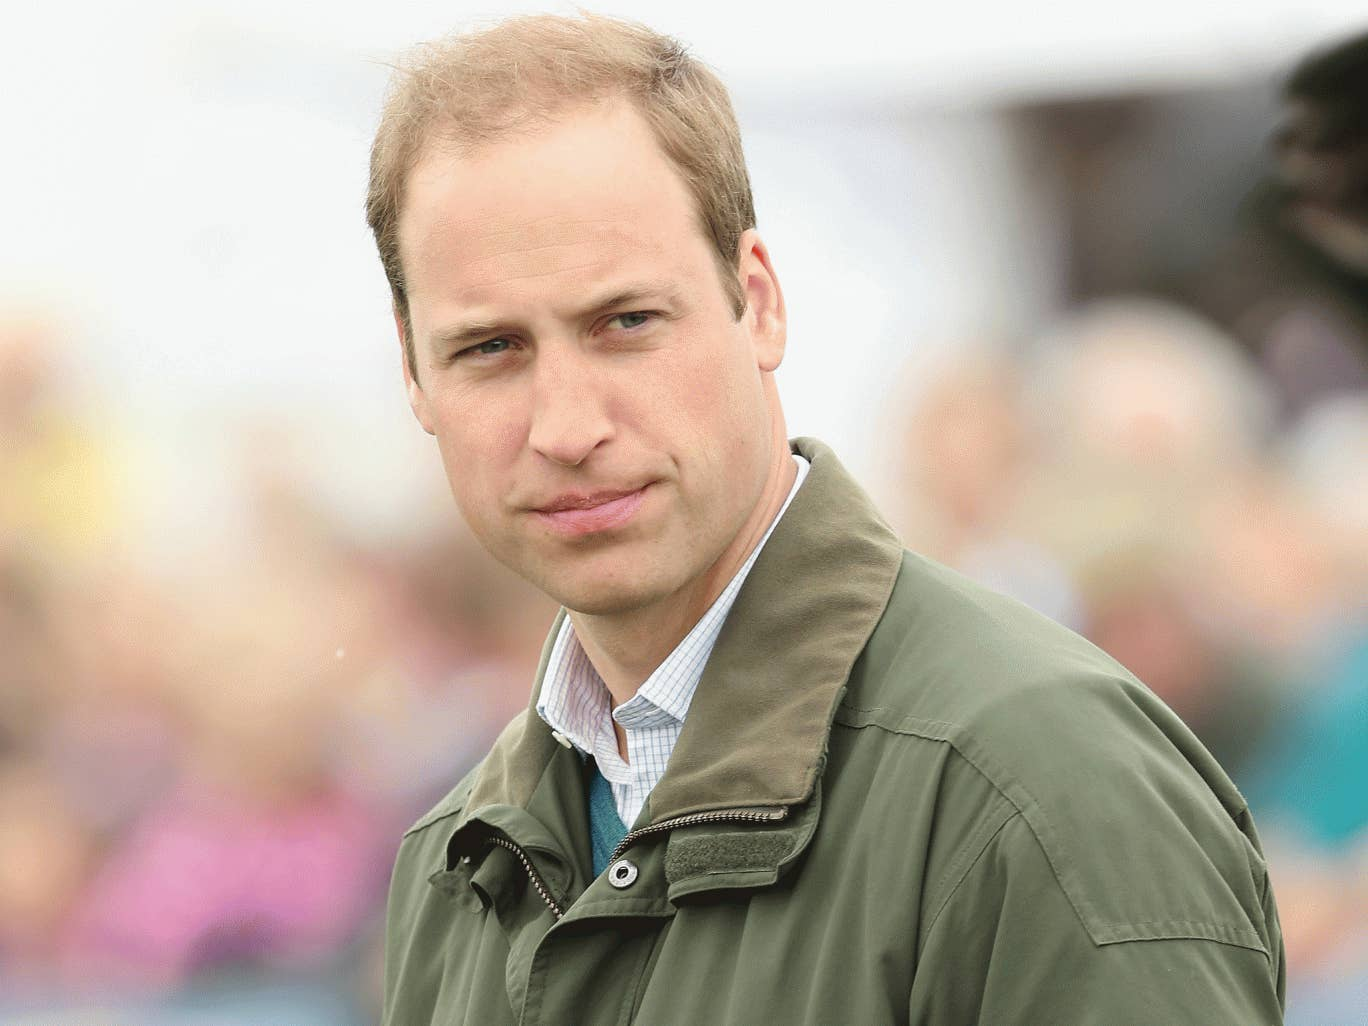 The Ministry of Defence has defended its decision to put down two patrol dogs that guarded the Duke of Cambridge during his time at RAF Valley in Anglesey